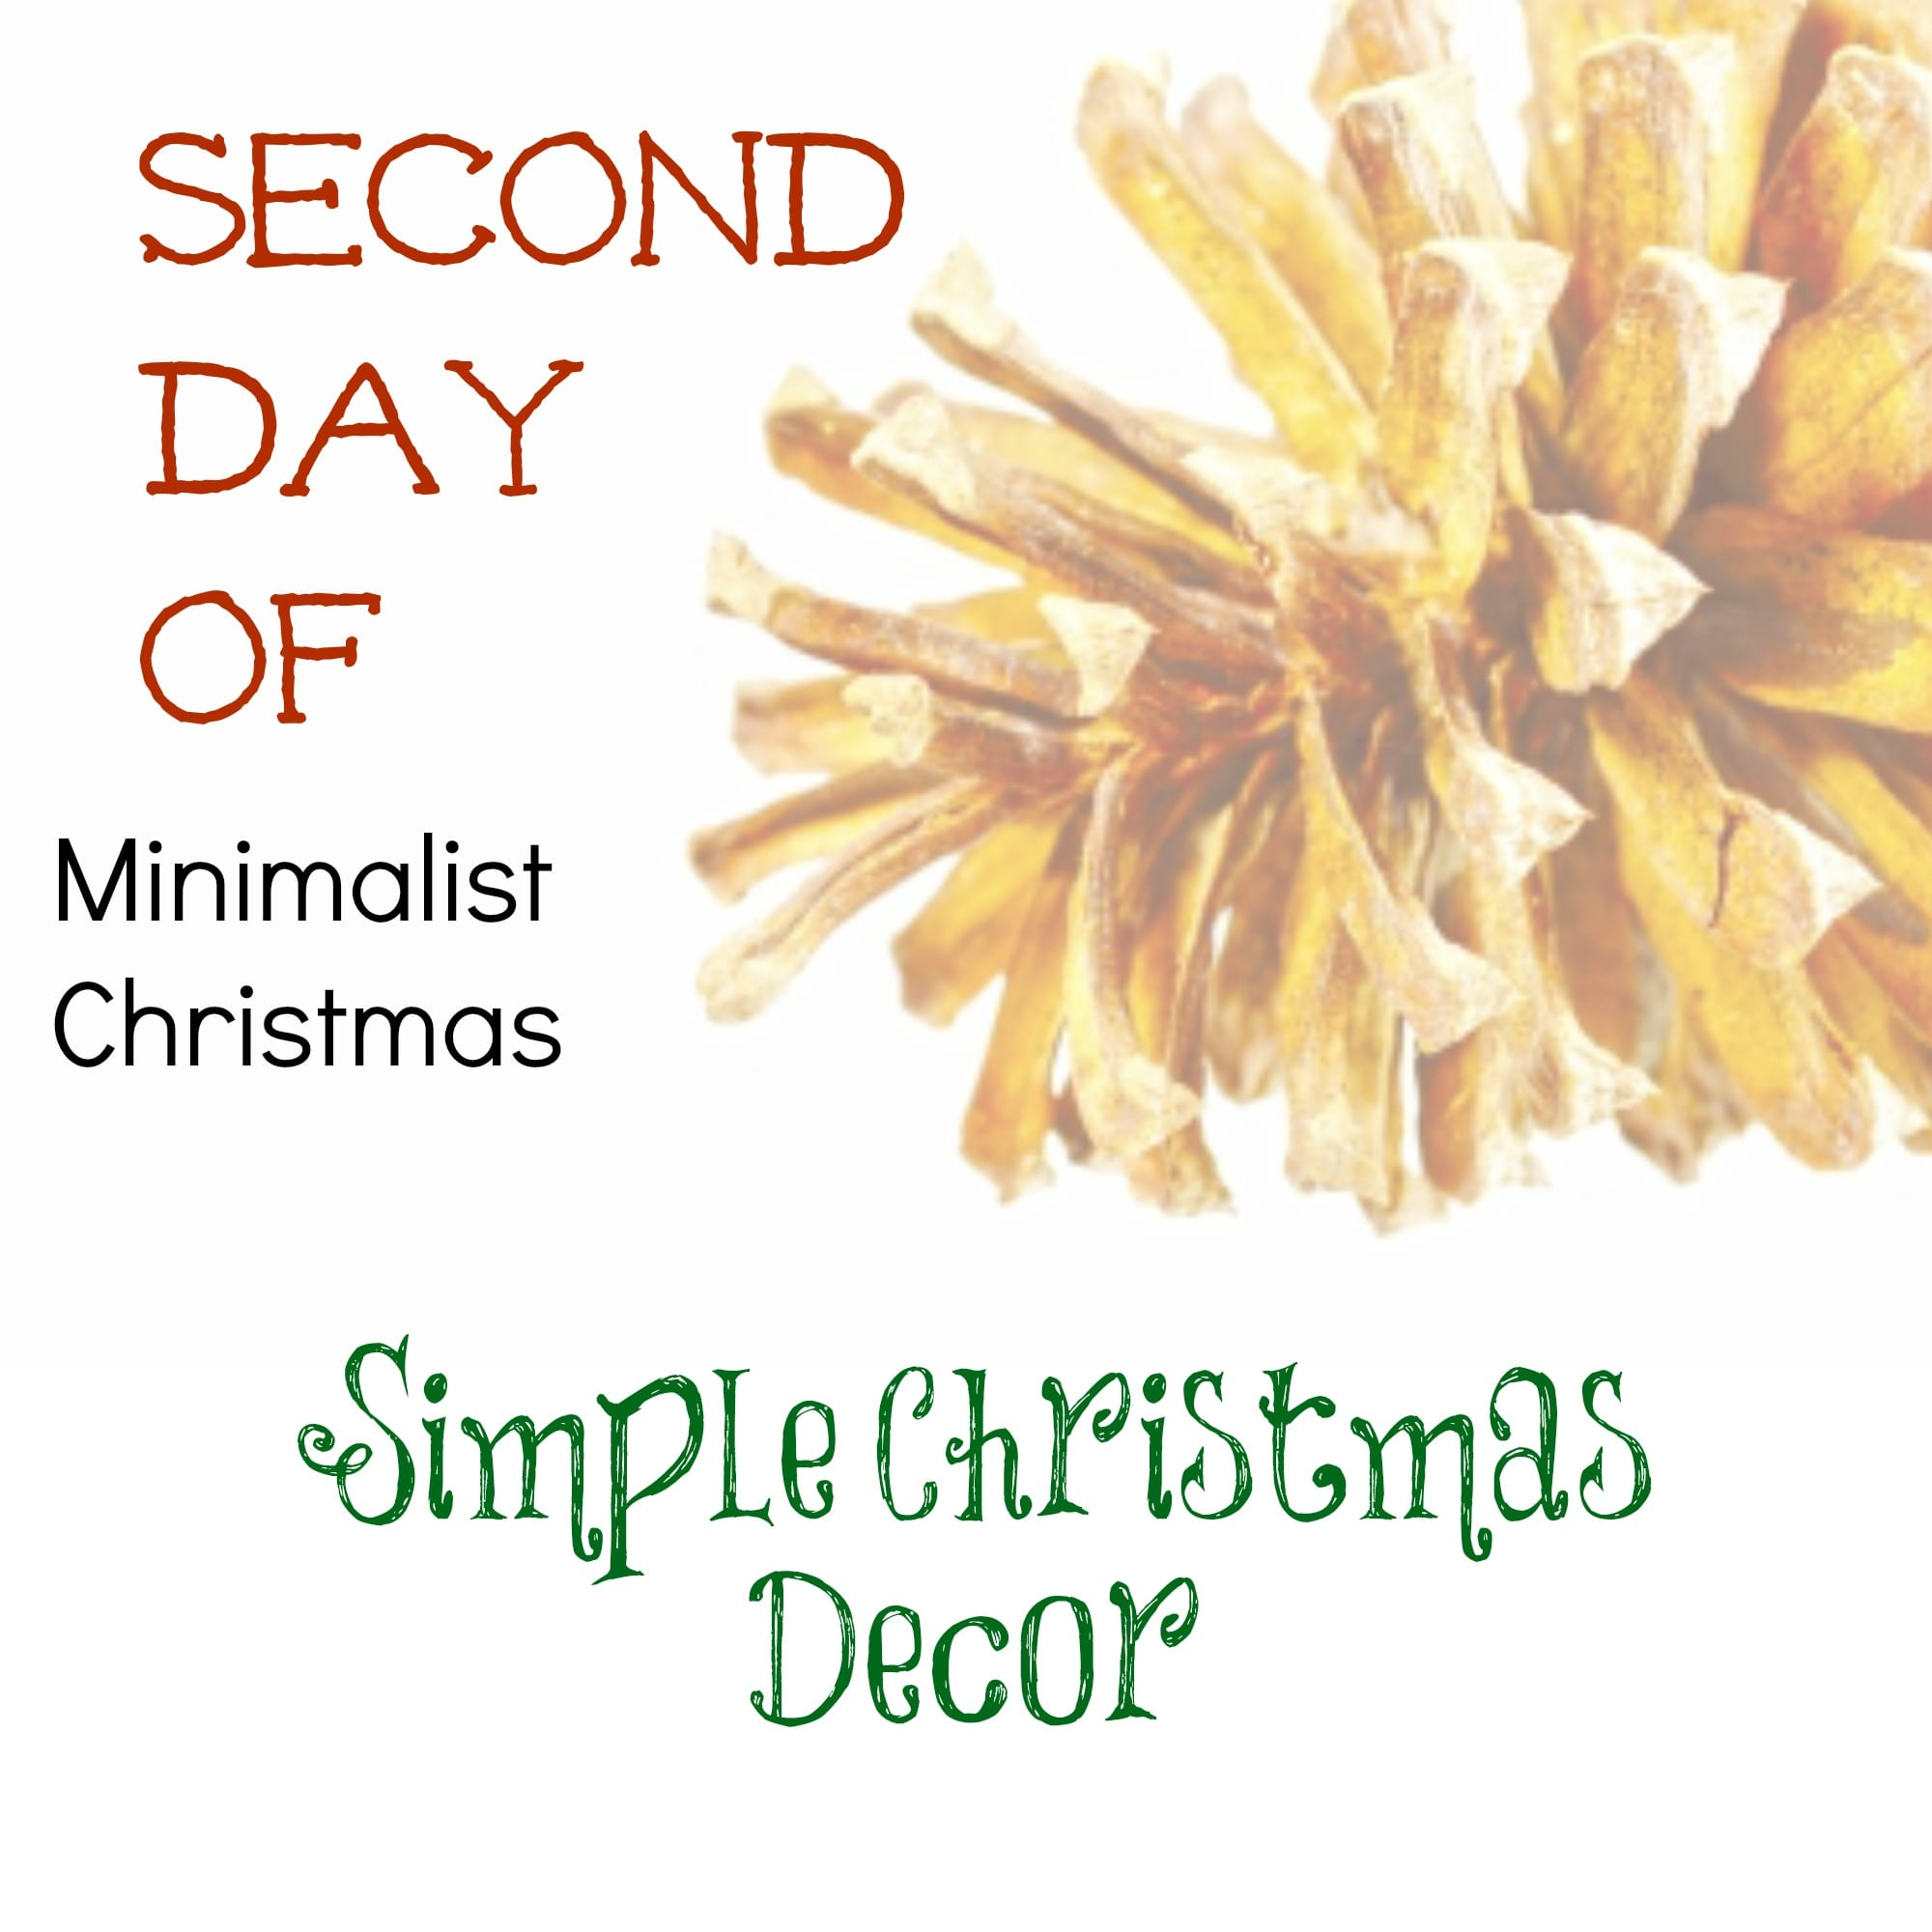 Second day of minimalist christmas simple christmas decor for Minimalist christmas